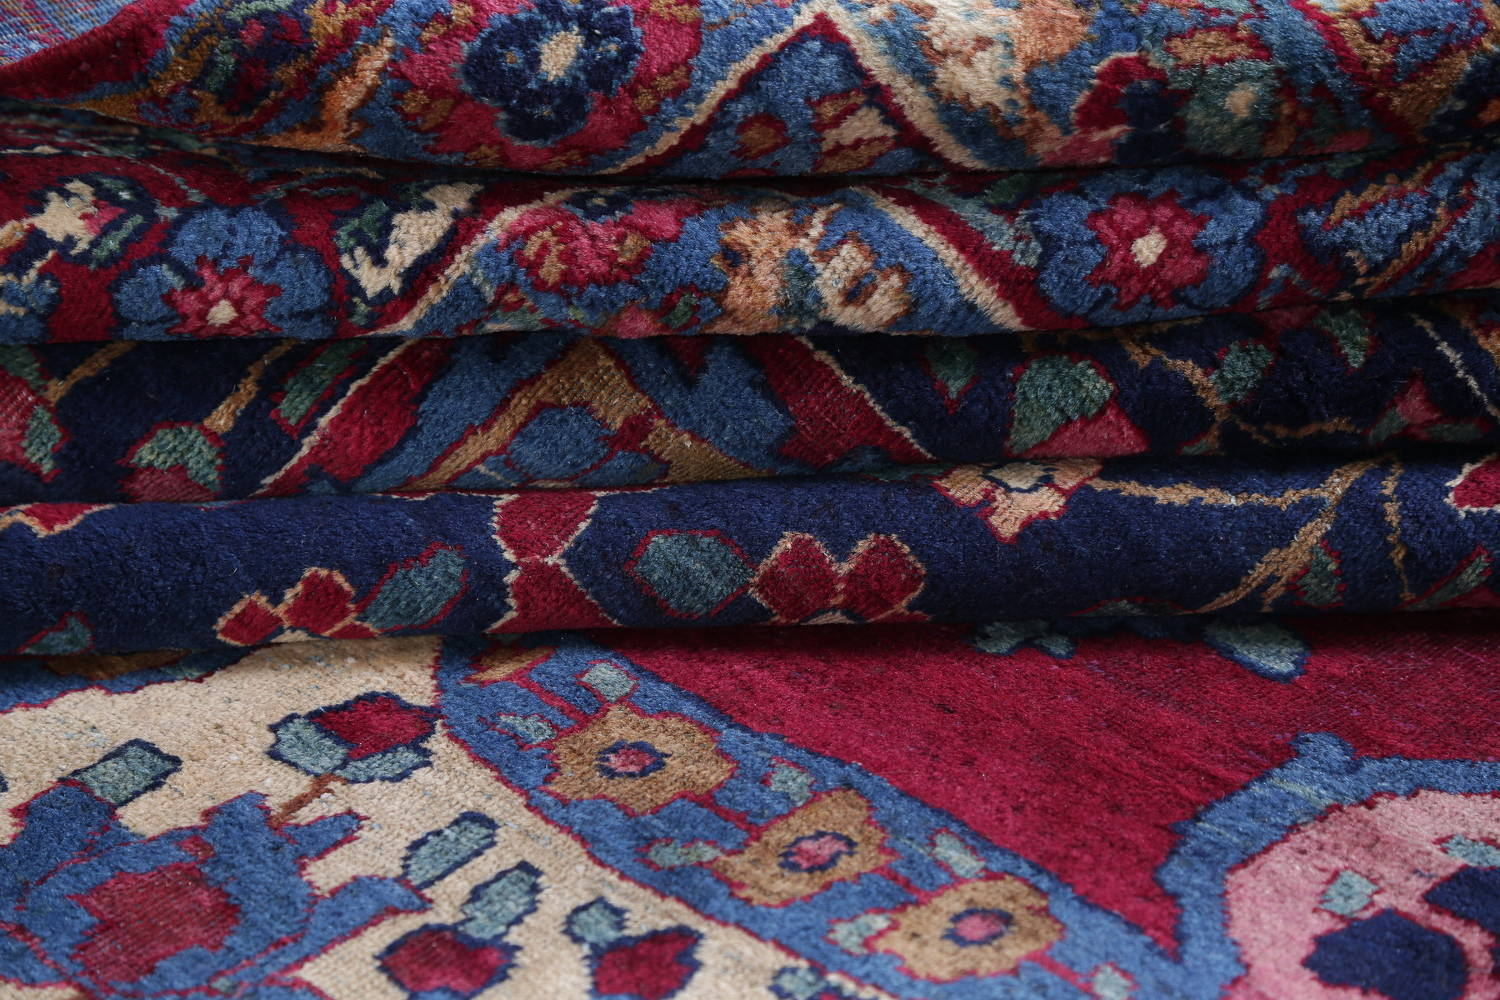 Pre-1900 Vegetable Dye Yazd Antique Persian Hand-Knotted  11x15 Wool Area Rug image 23